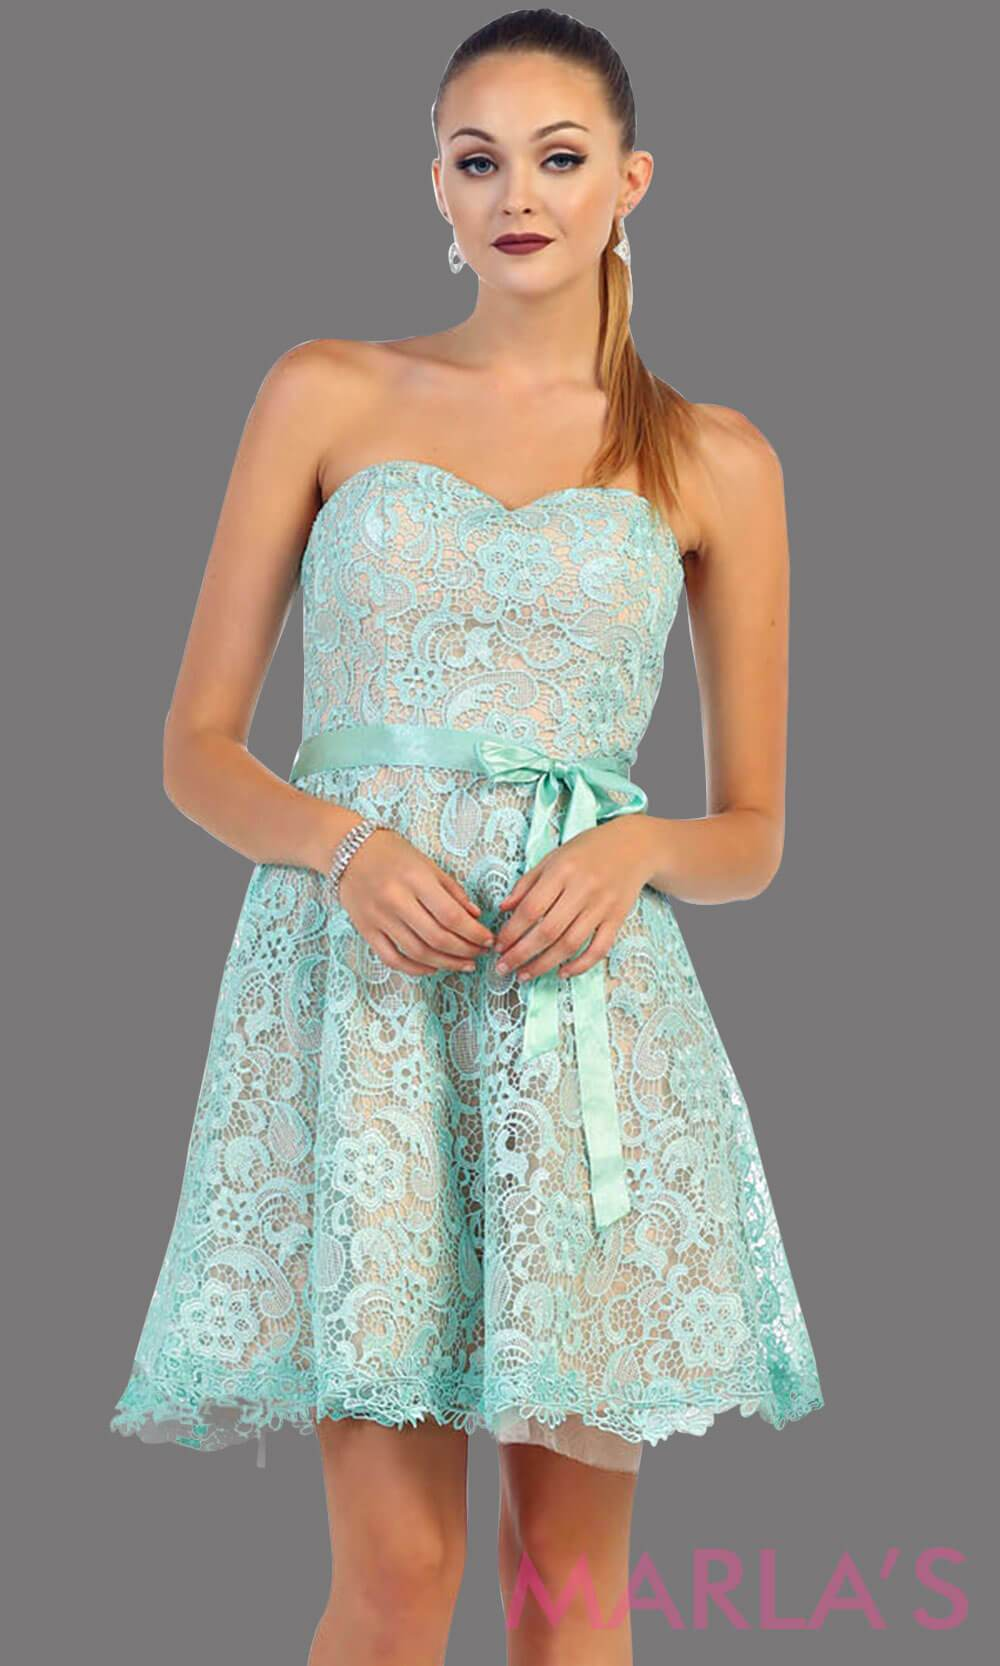 Short strapless aqua lace dress with satin ribbon. This light blue dress is perfect for grade 8 graduation, party dress, semi formal or even homecoming. It is available in plus sizes